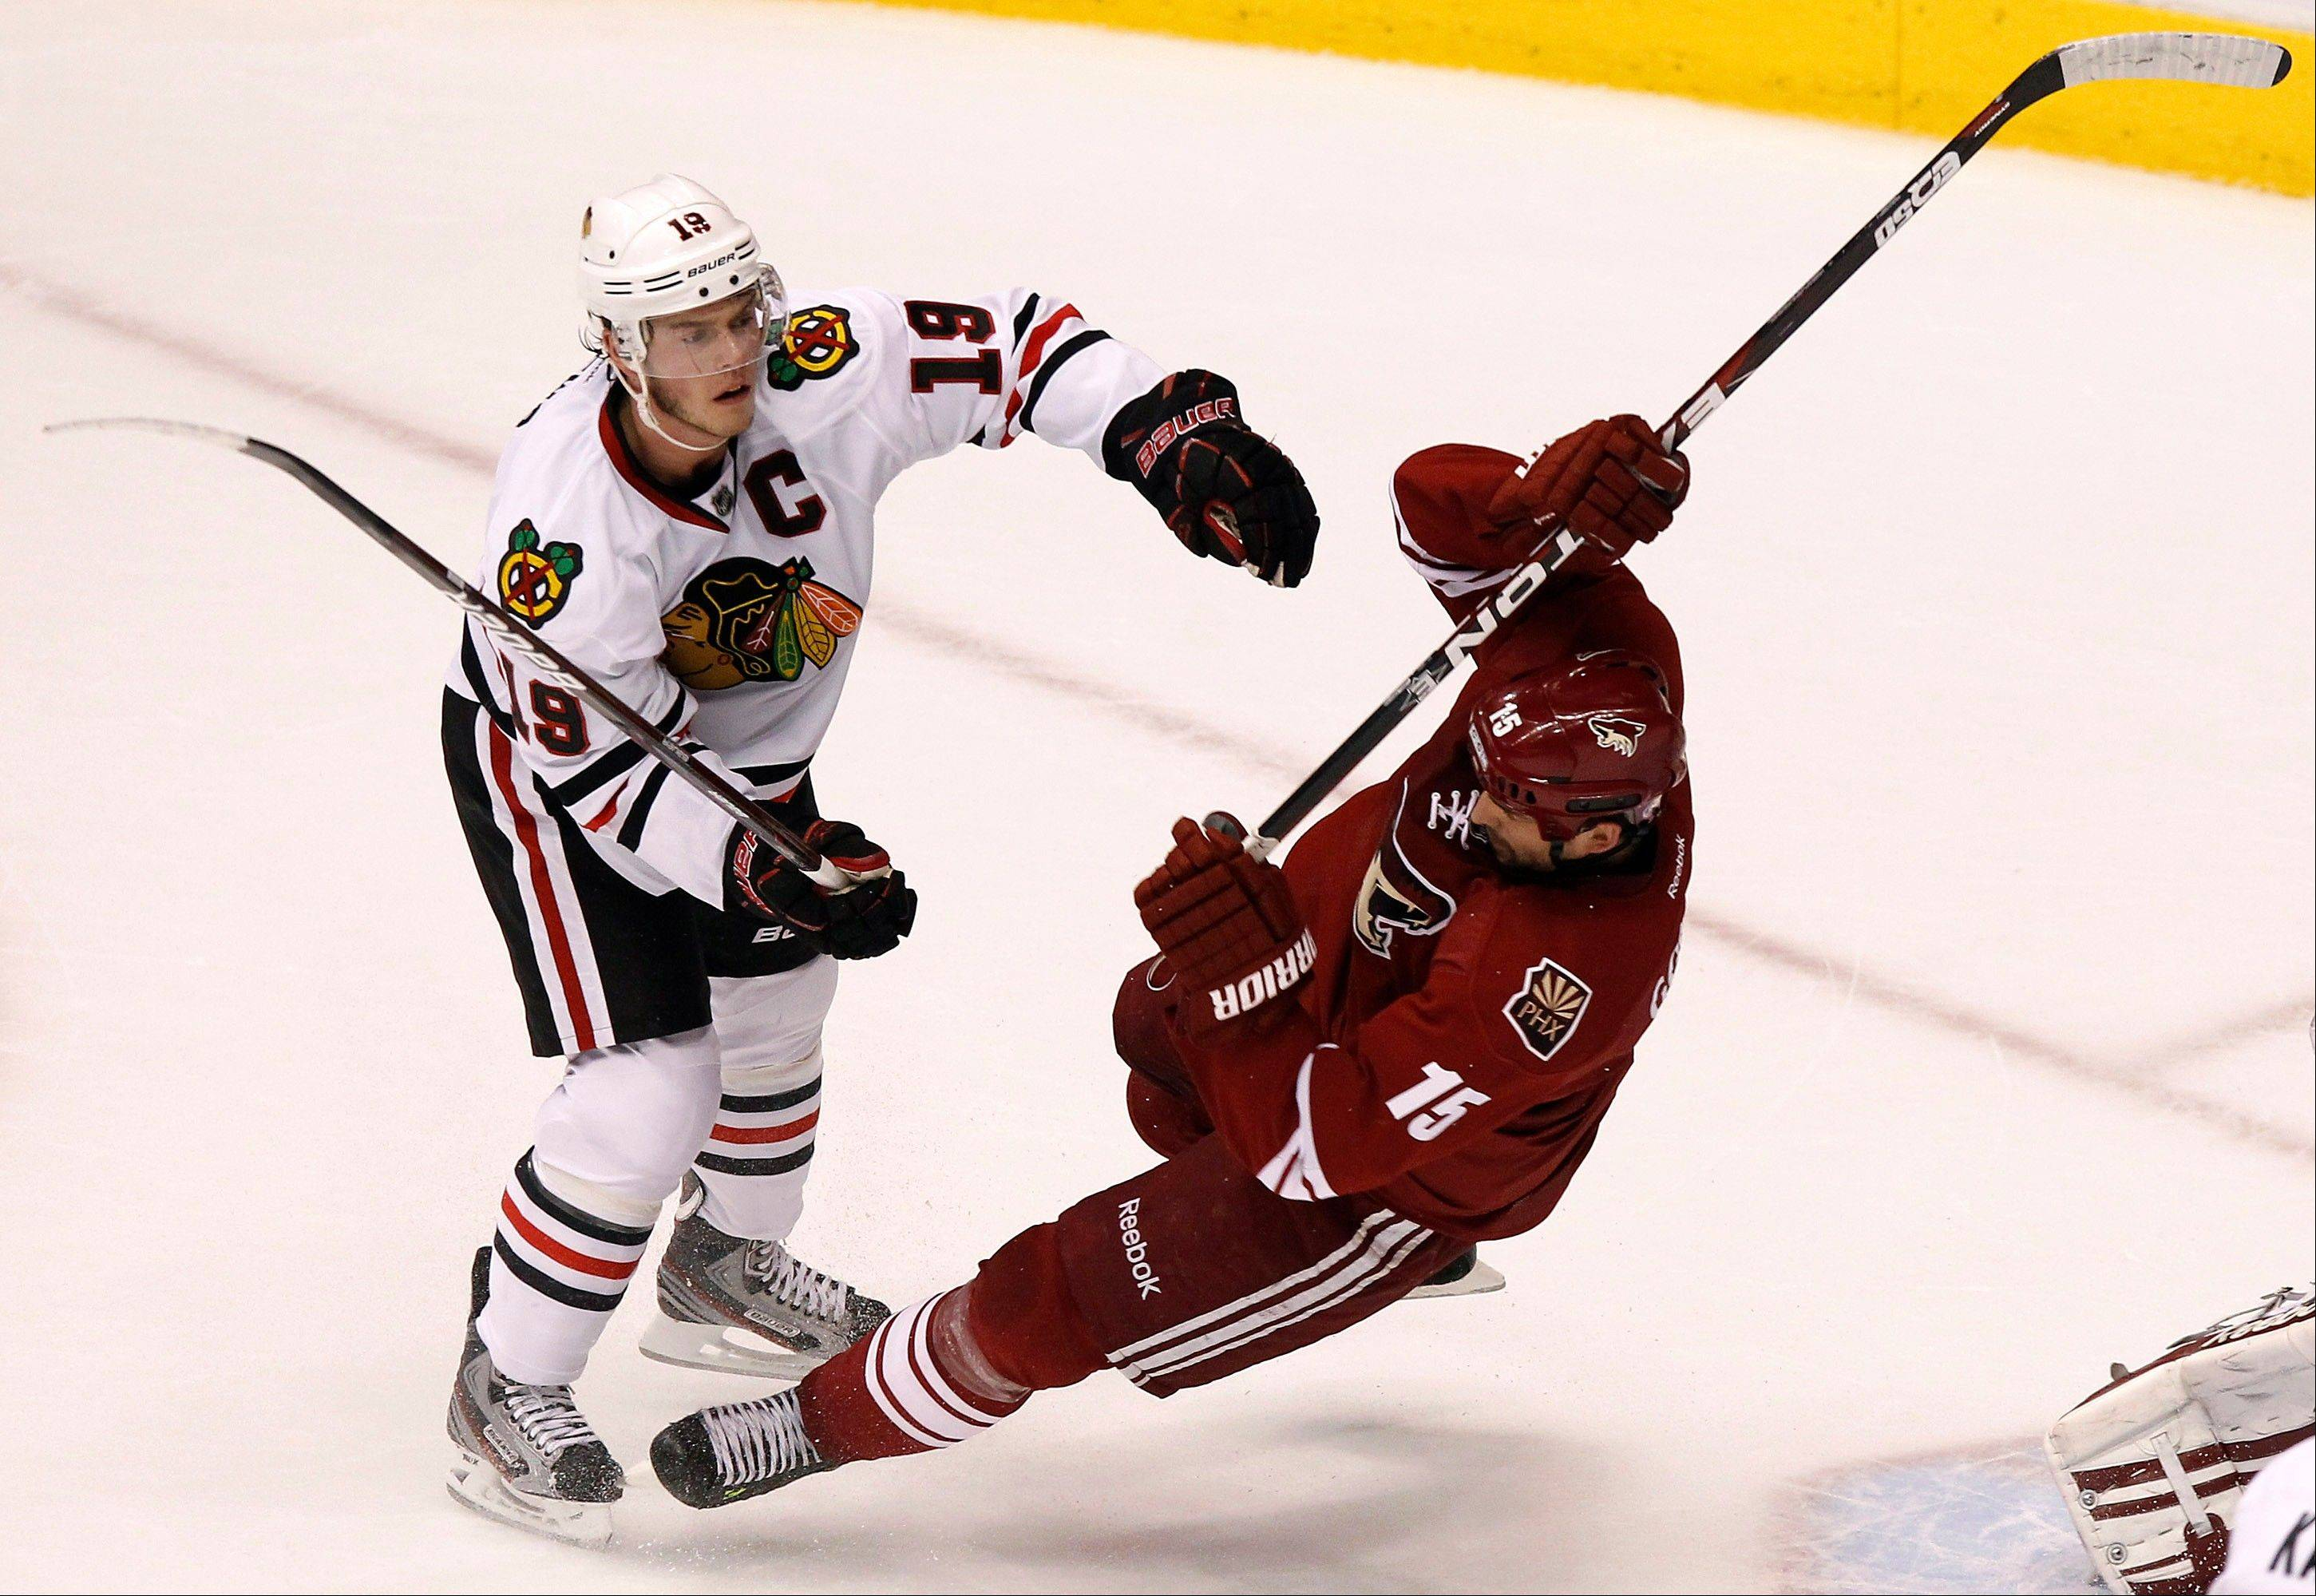 Jonathan Toews (19) checks Phoenix Coyotes' Boyd Gordon (15) to the ice during the first period in Game 5 of an NHL hockey Stanley Cup first-round playoff series Saturday, April 21, 2012, in Glendale, Ariz.